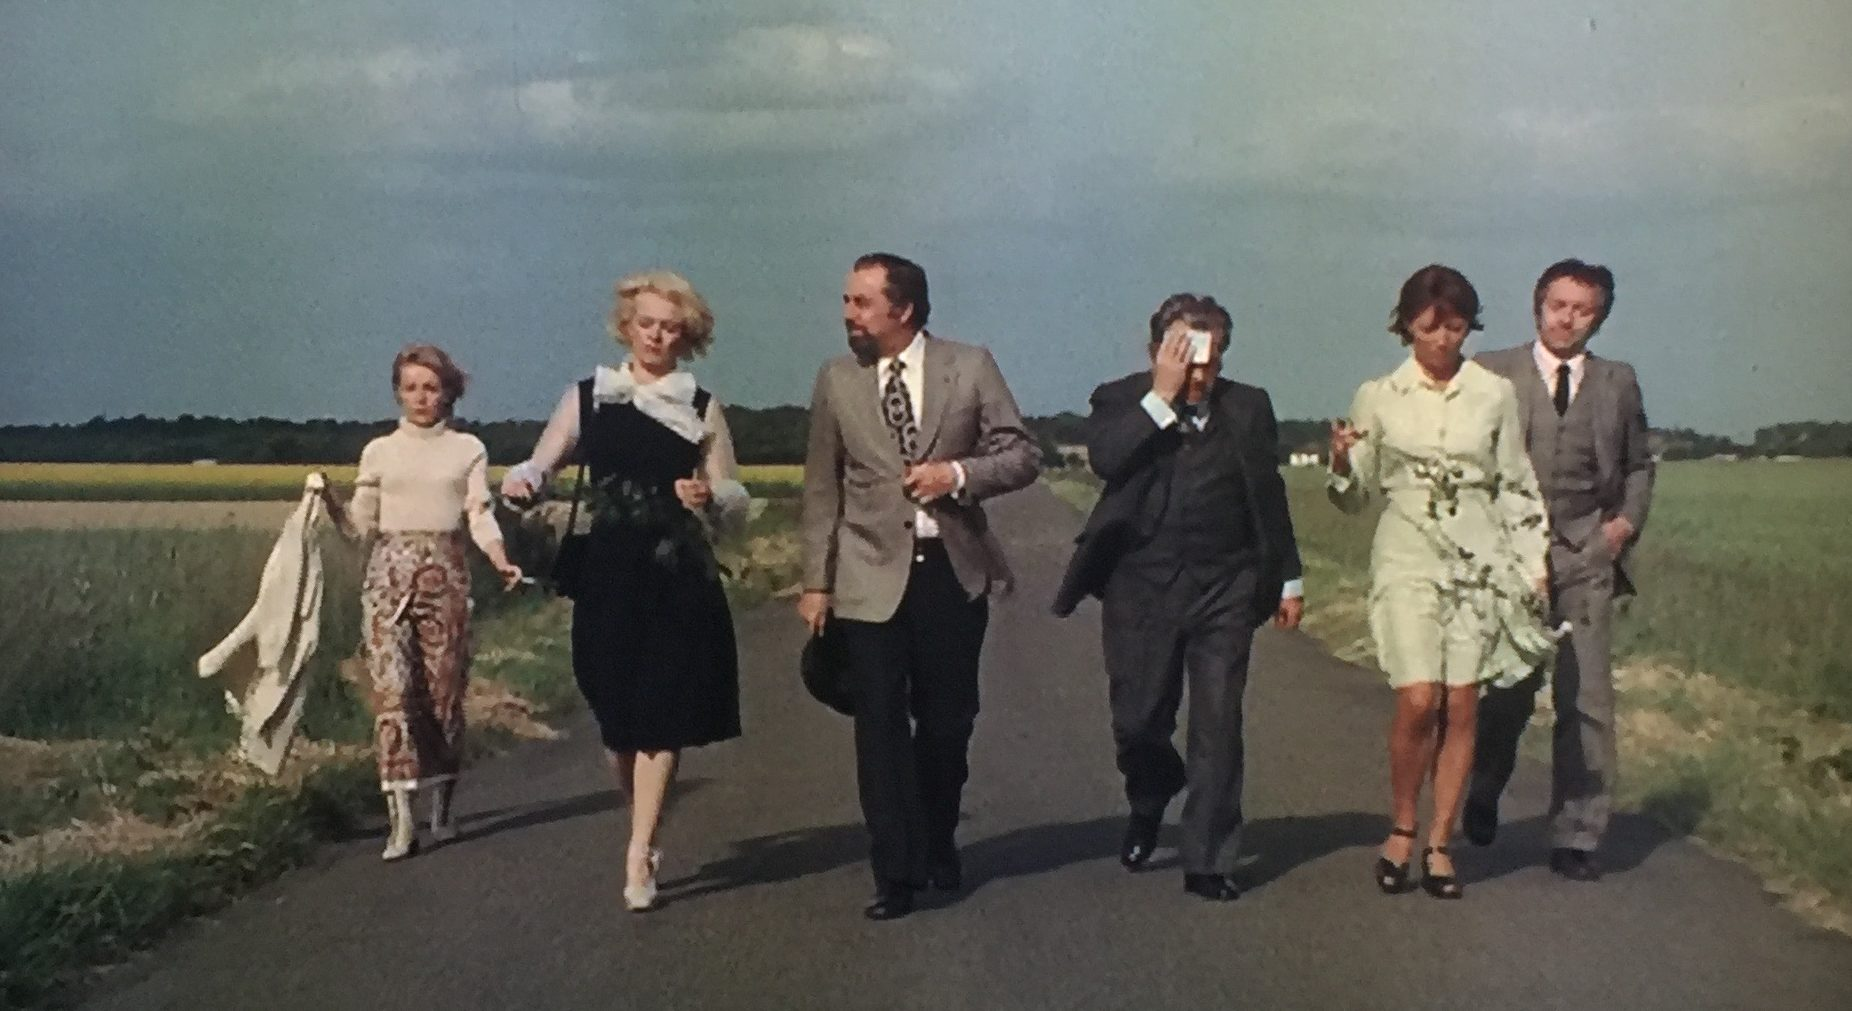 Six friends set out to dinner - (l to r) Delphine Seyrig, Bulle Ogier, Fernando Rey, Paul Frankeur, Stephane Audran and Jean-Pierre Cassel in The Discreet Charm of the Bourgeoisie (1972)